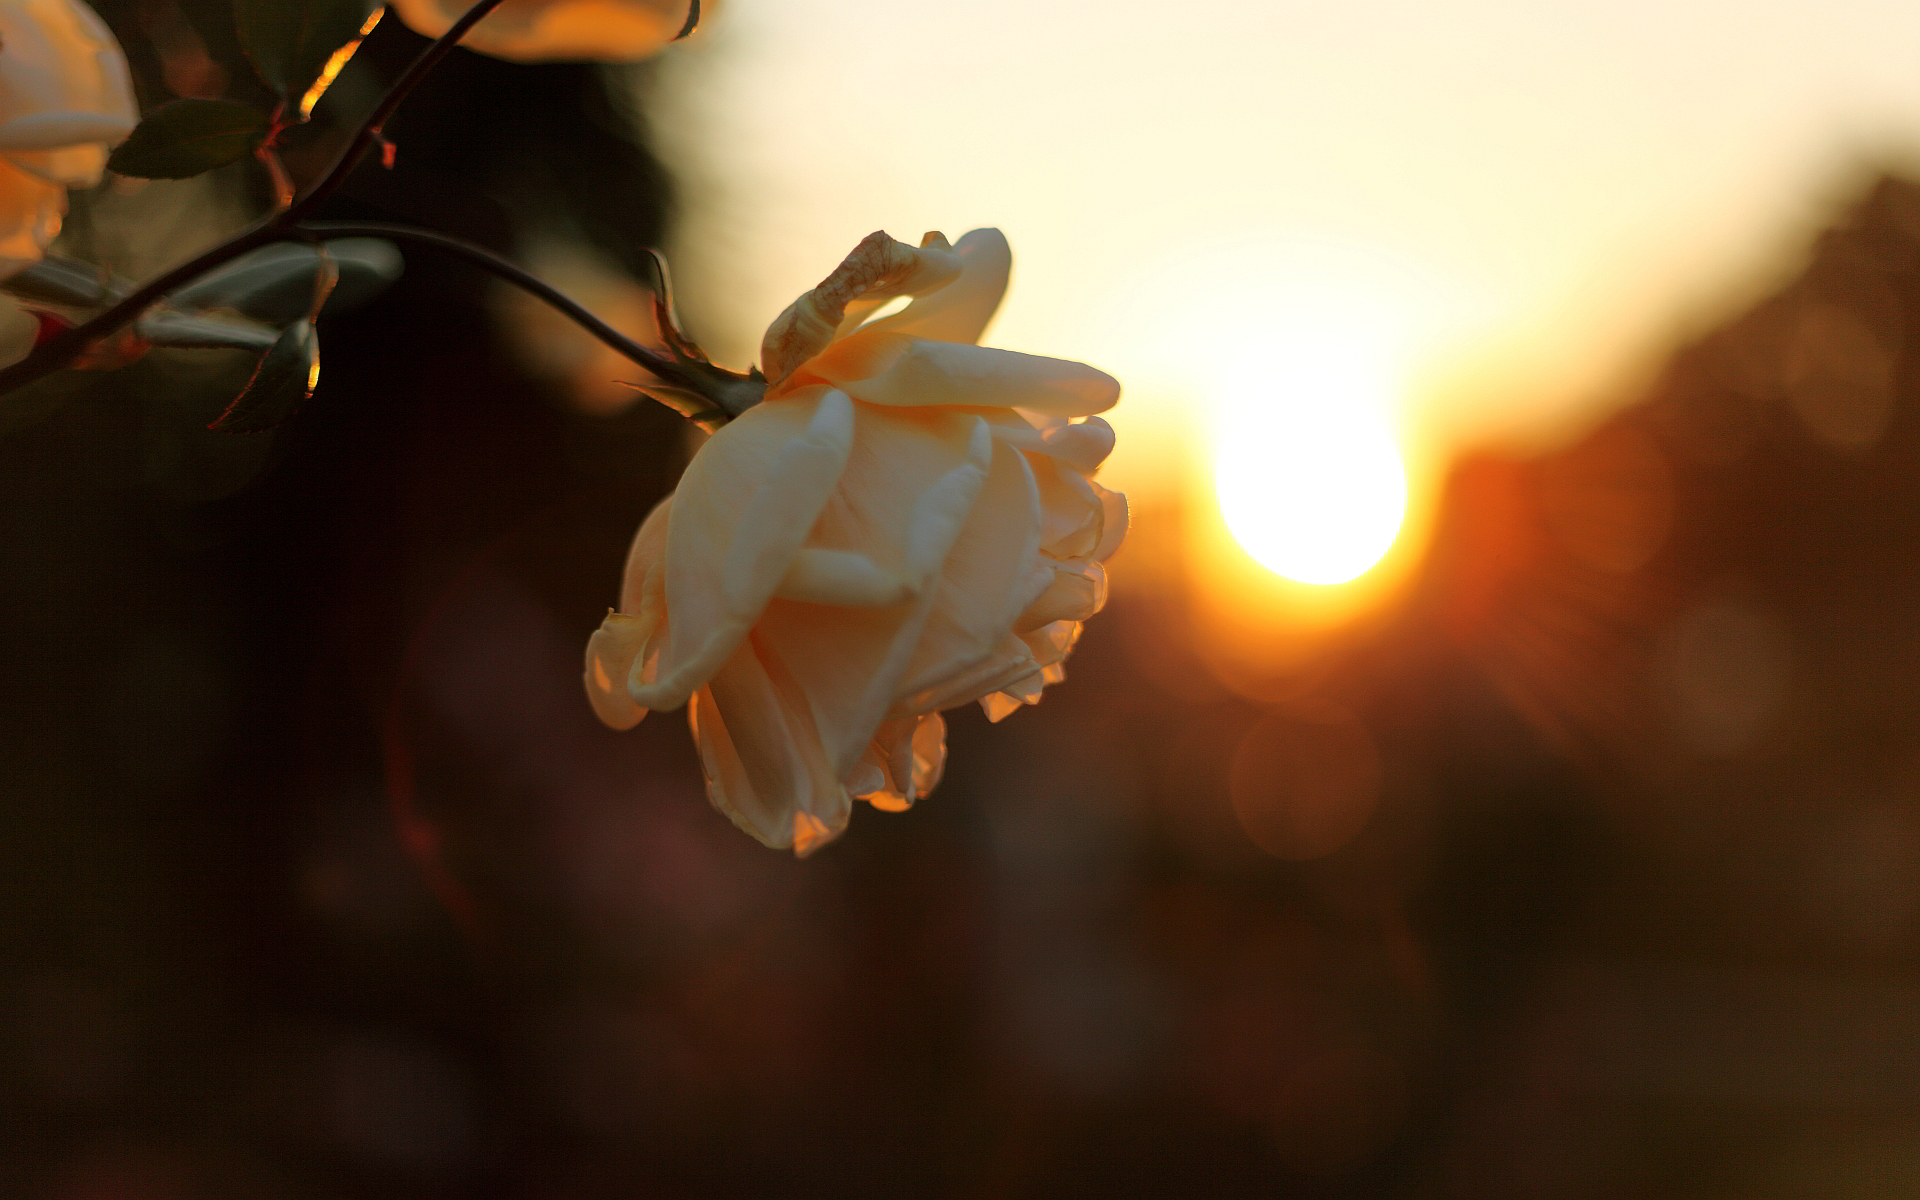 Flower bud sunset